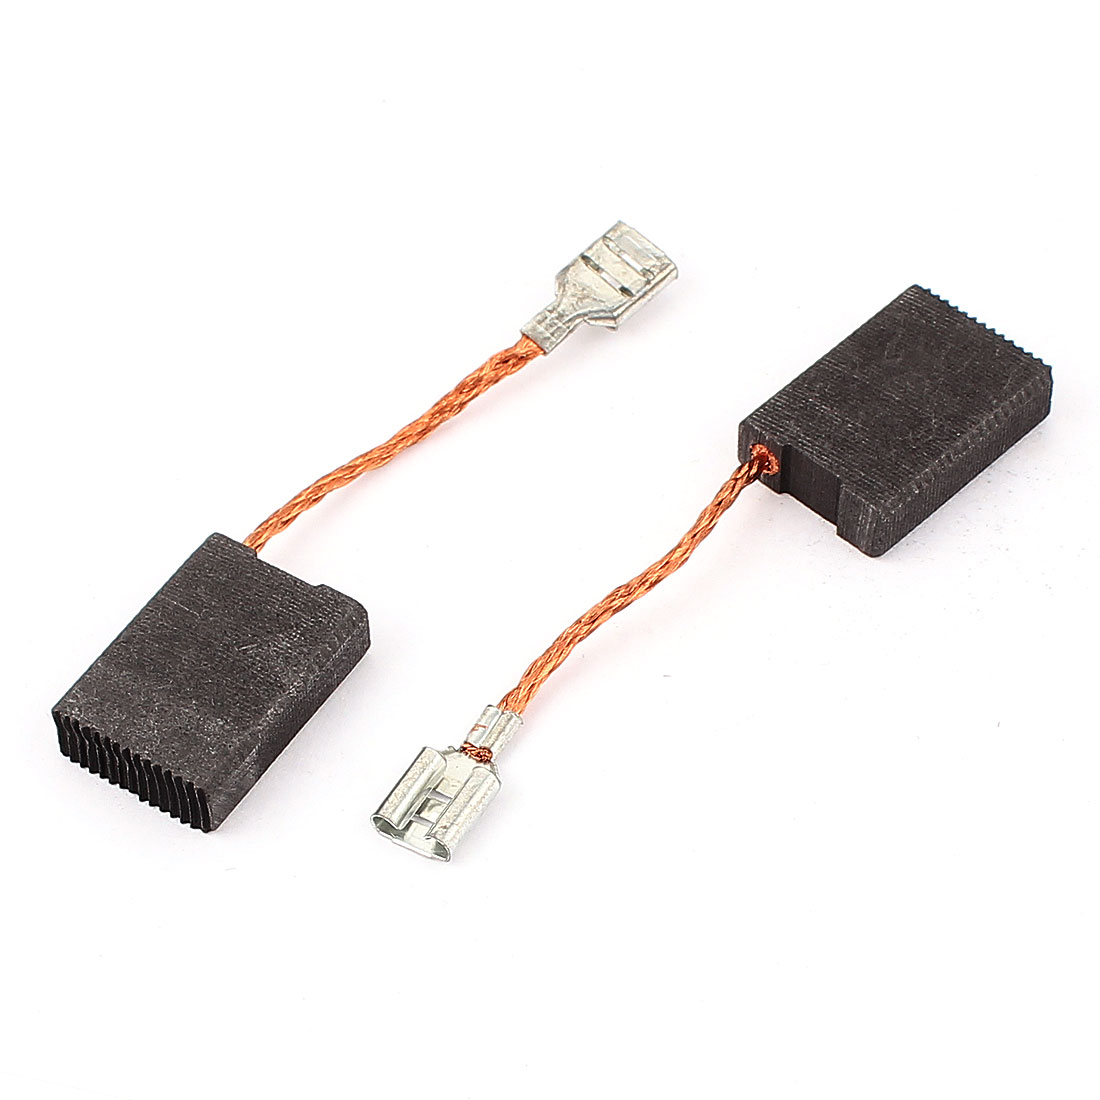 Angle Grinder Replacement 22 x 16 x 7mm Motor Carbon Brushes 2pcs